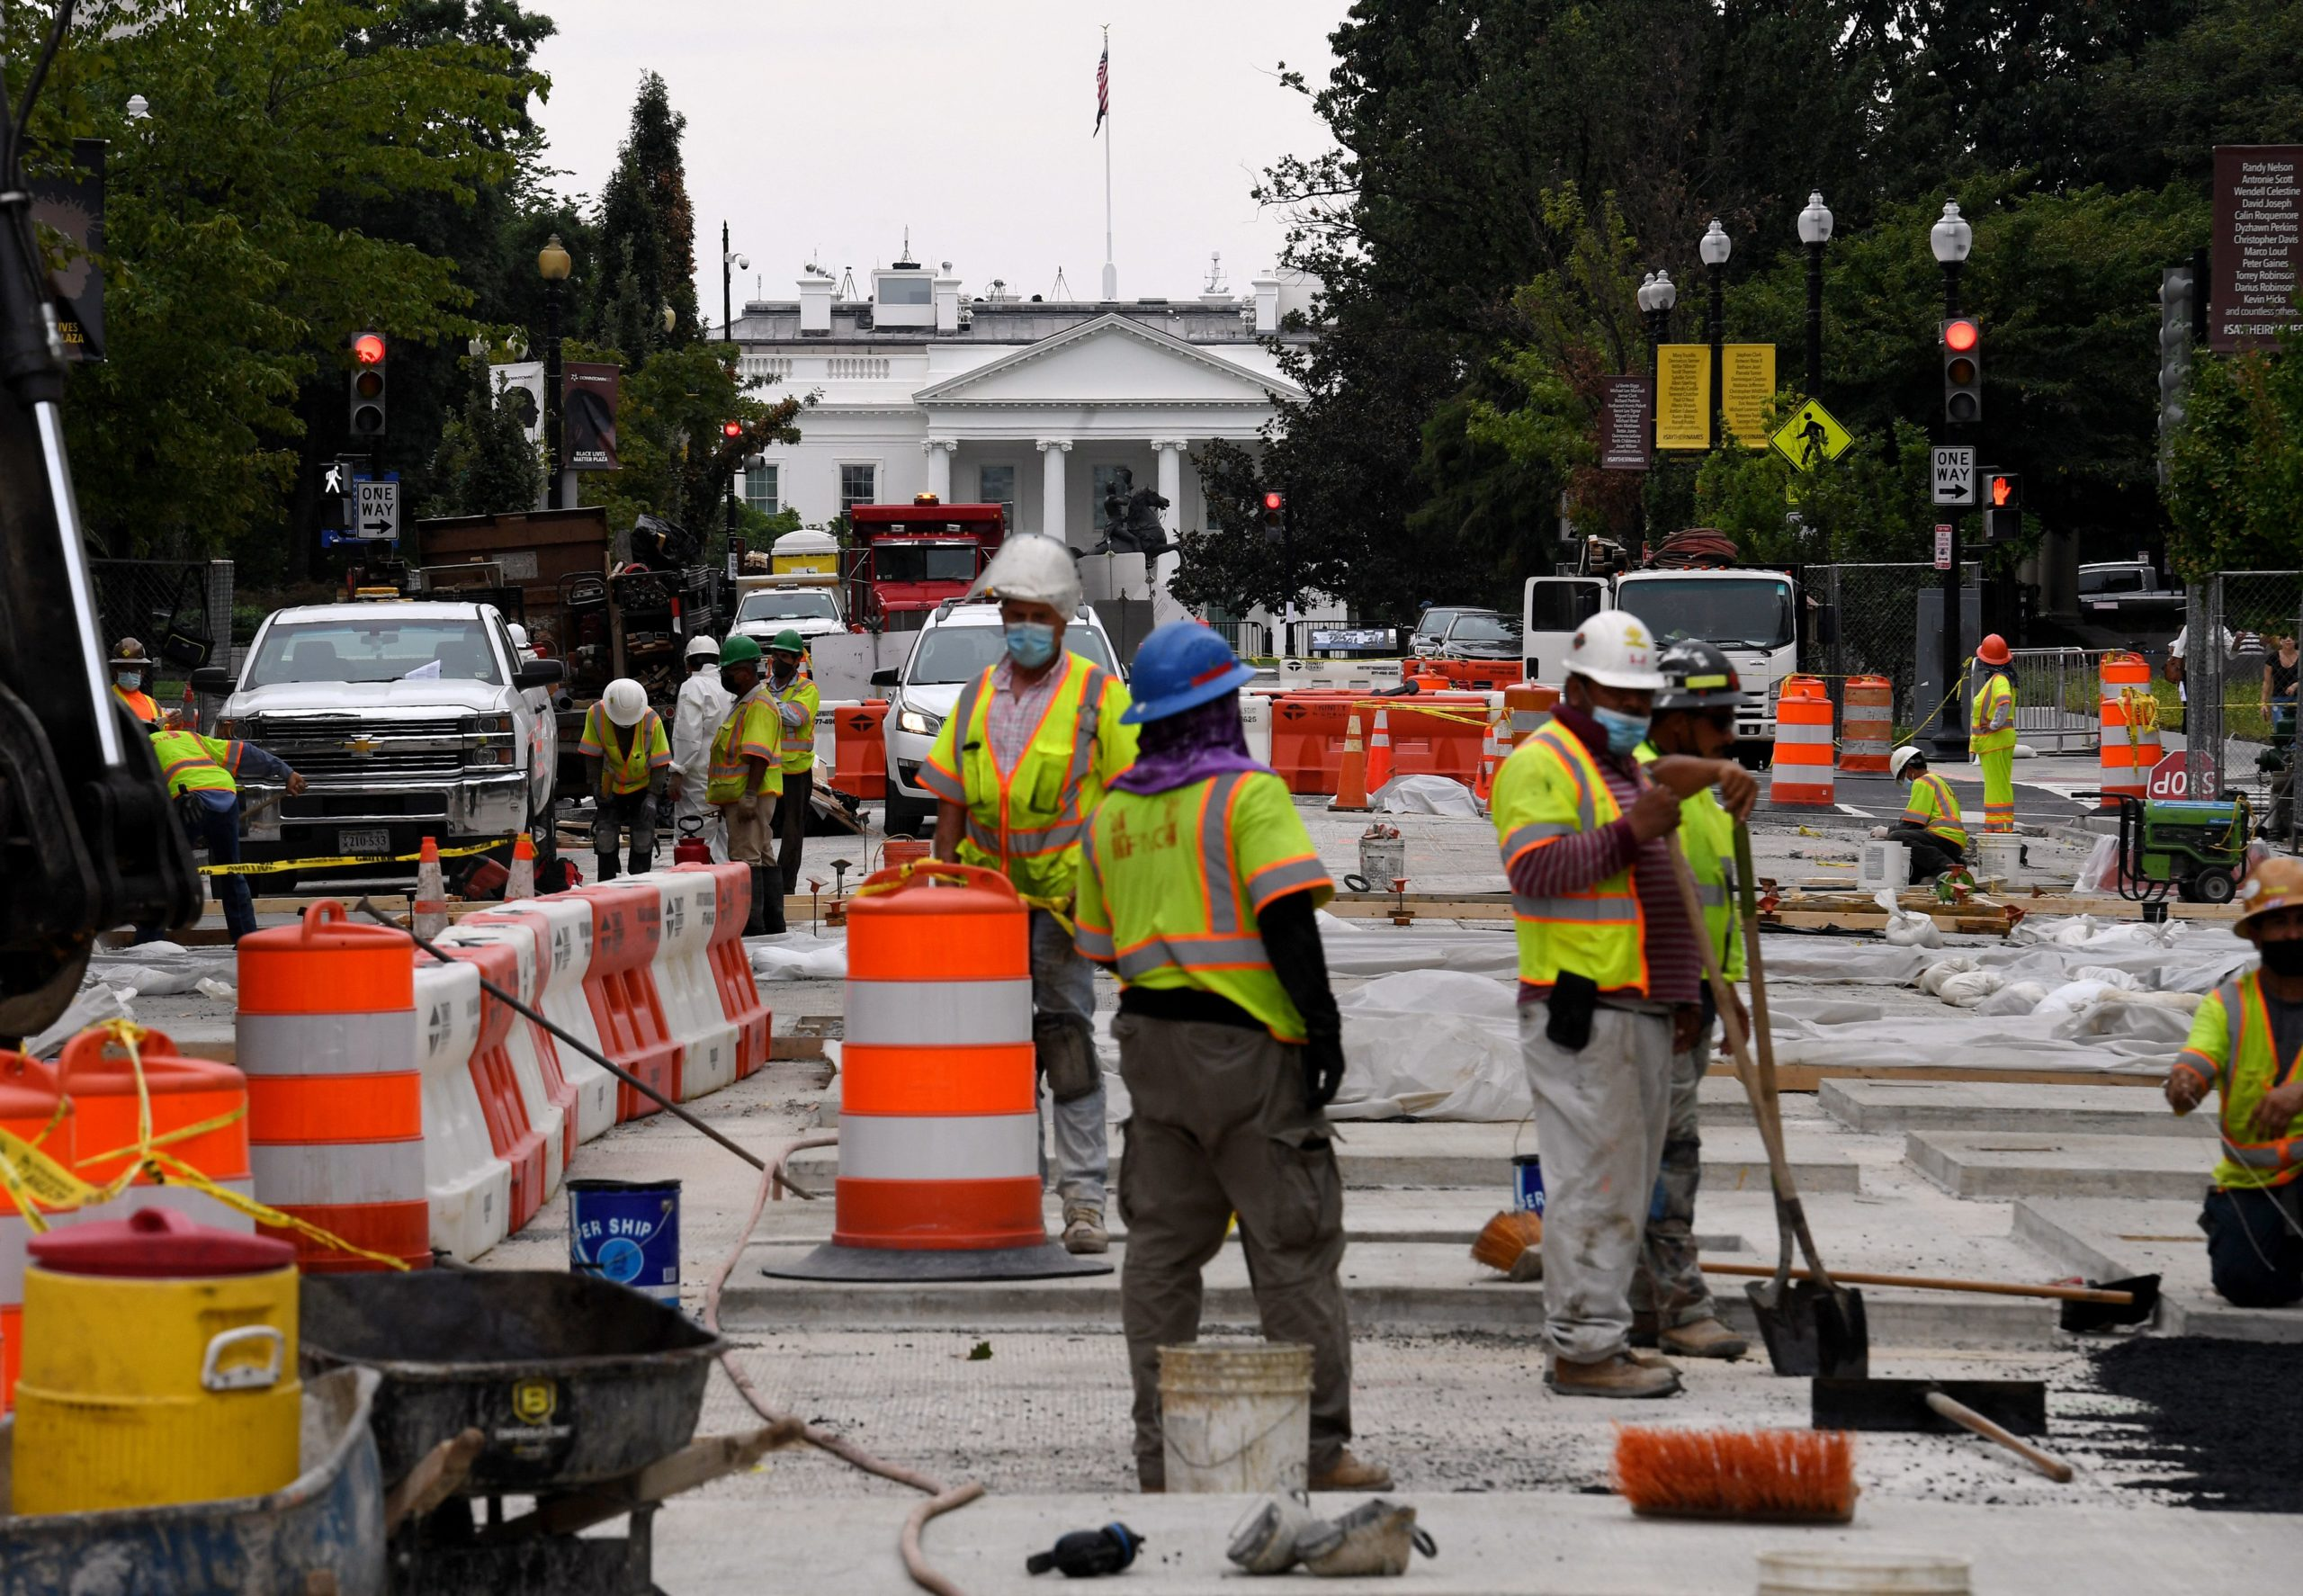 Construction workers repair a street near the White House in Washington, D.C. on Aug. 31. (Olivier Douliery/AFP via Getty Images)